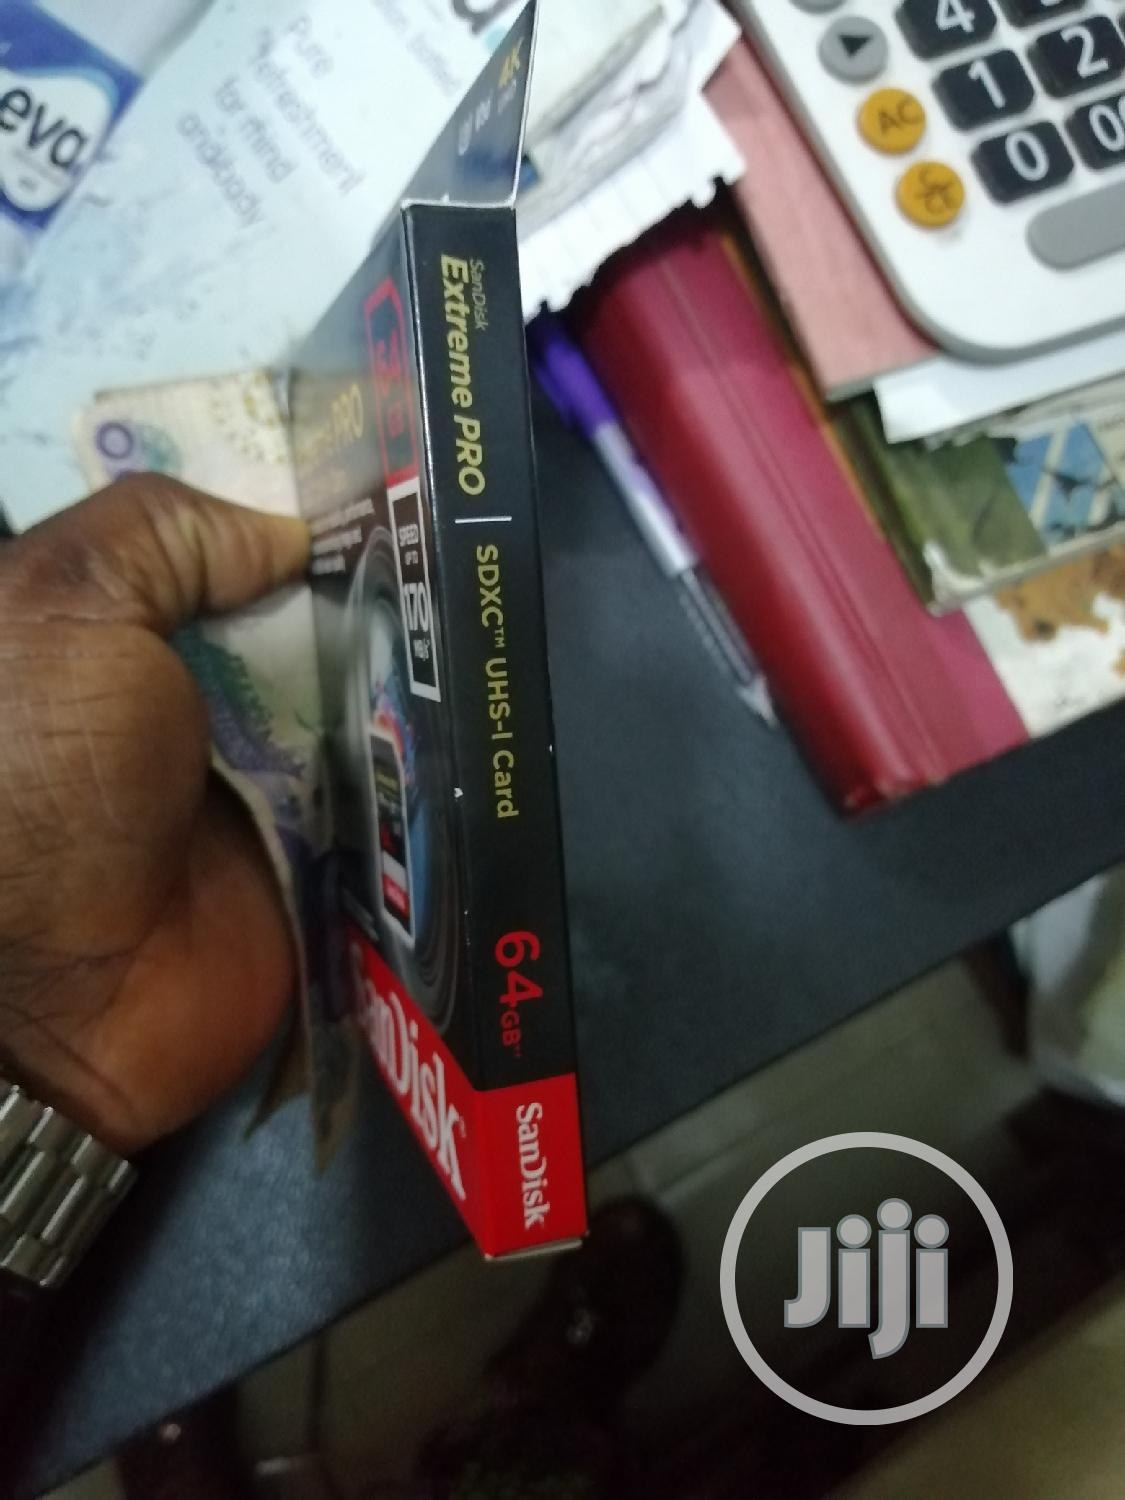 Sandisk Extreme Pro 64gb Sdxc Uhs-1 170mb/S | Photo & Video Cameras for sale in Ikeja, Lagos State, Nigeria